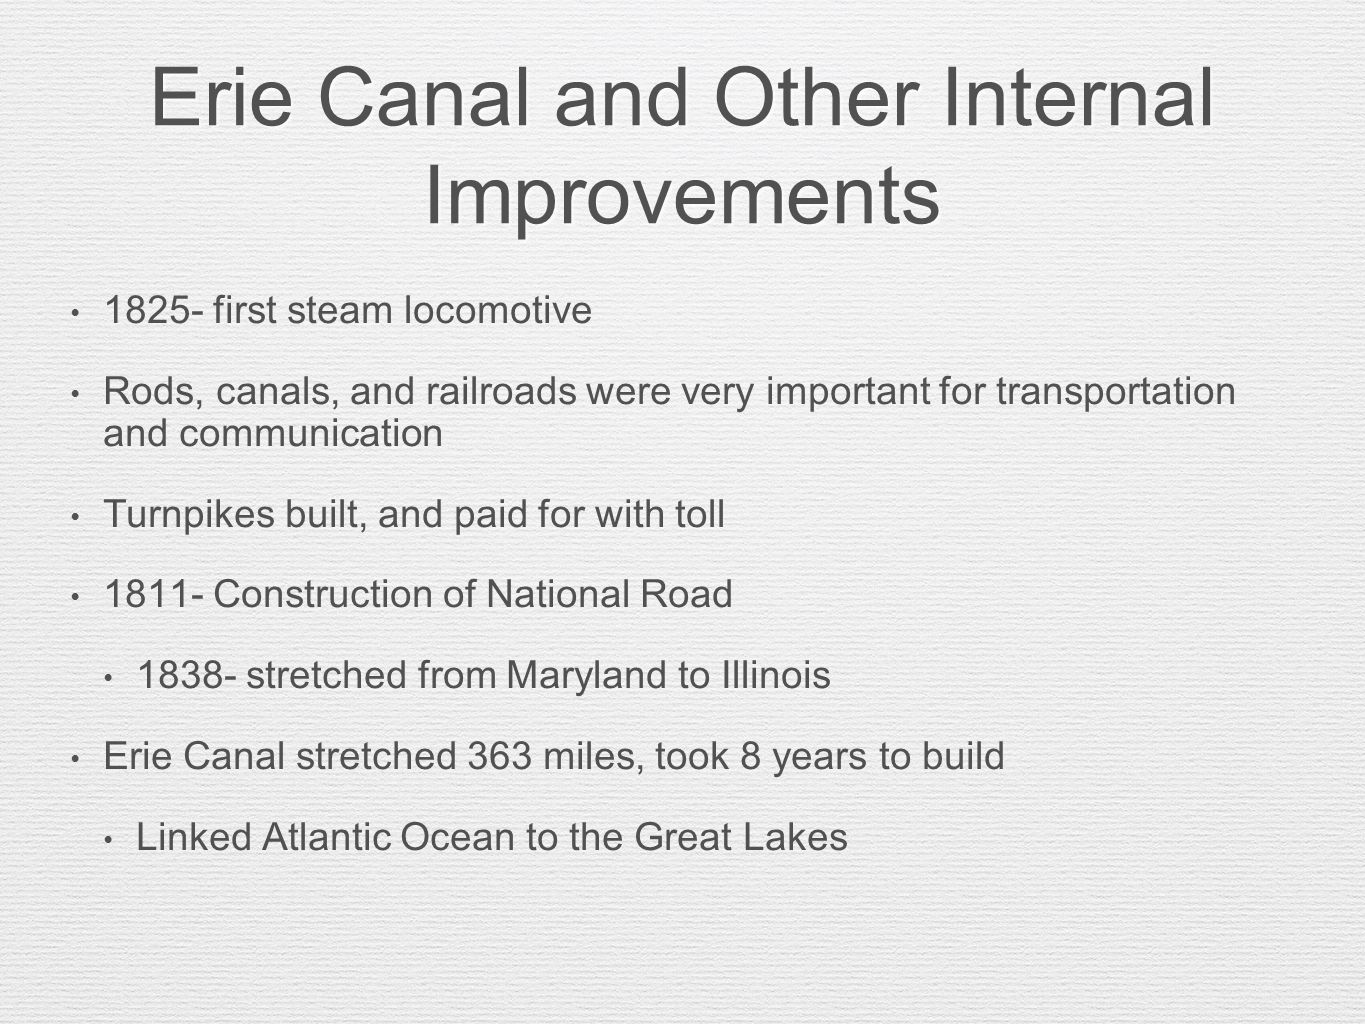 Erie Canal and Other Internal Improvements